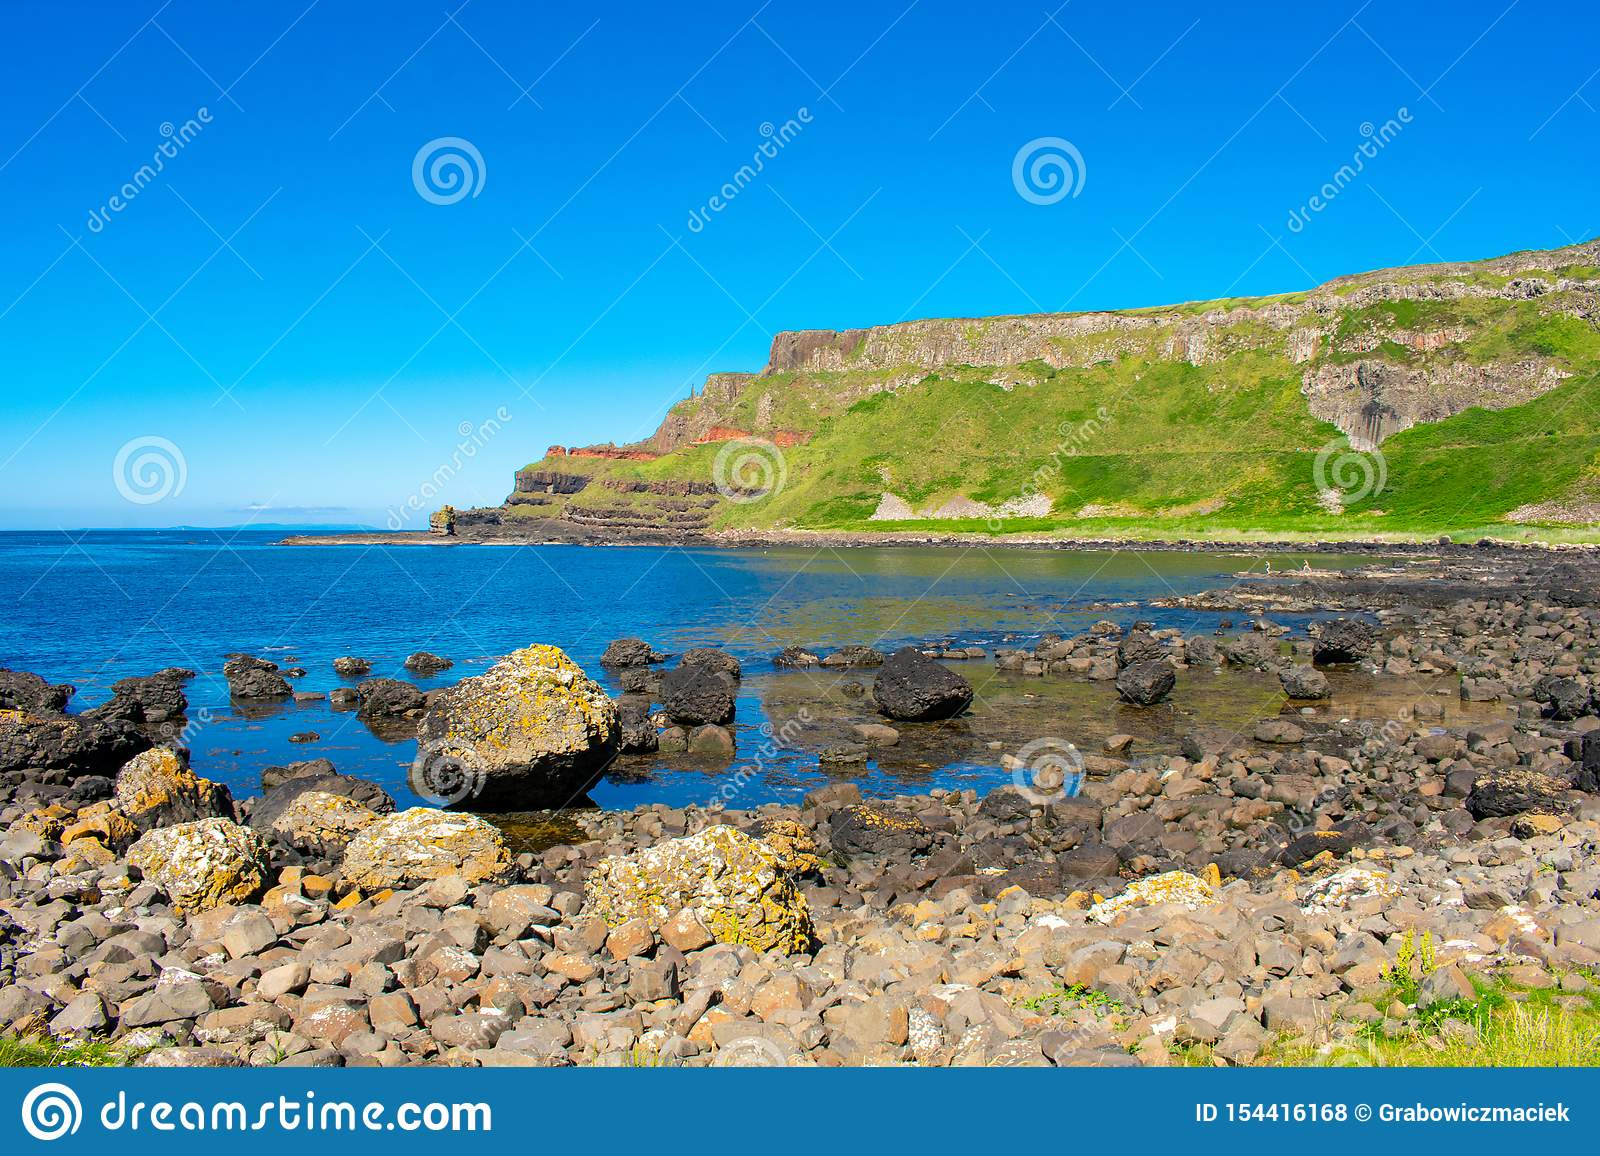 Giants Causeway Aerial View Most Popular And Famous Attraction In ...